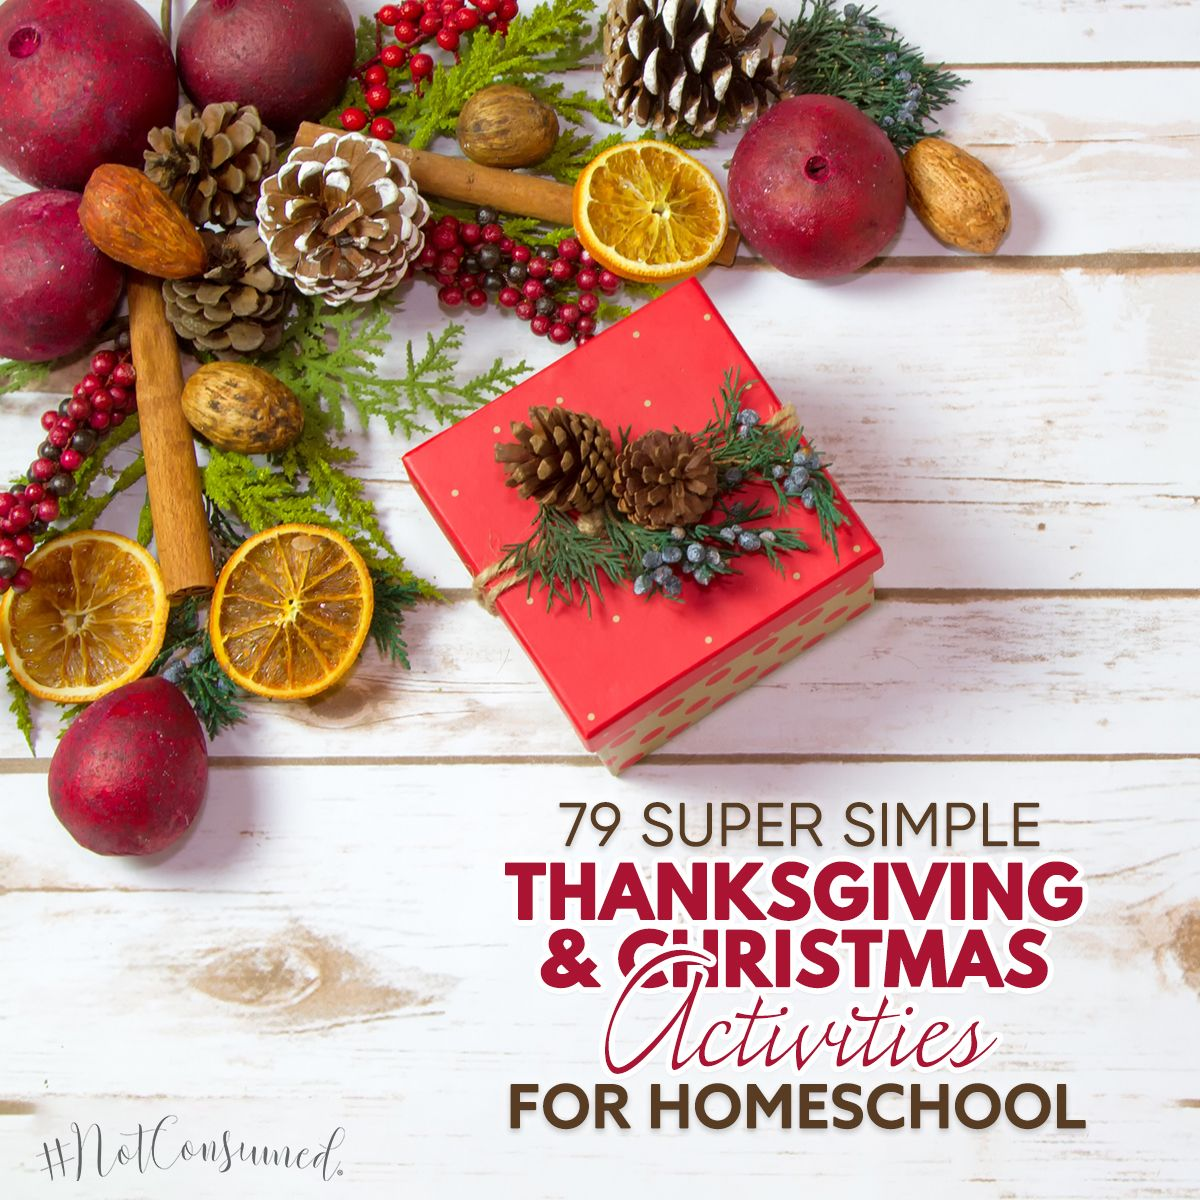 76 Thanksgiving And Christmas Activities For Homeschool